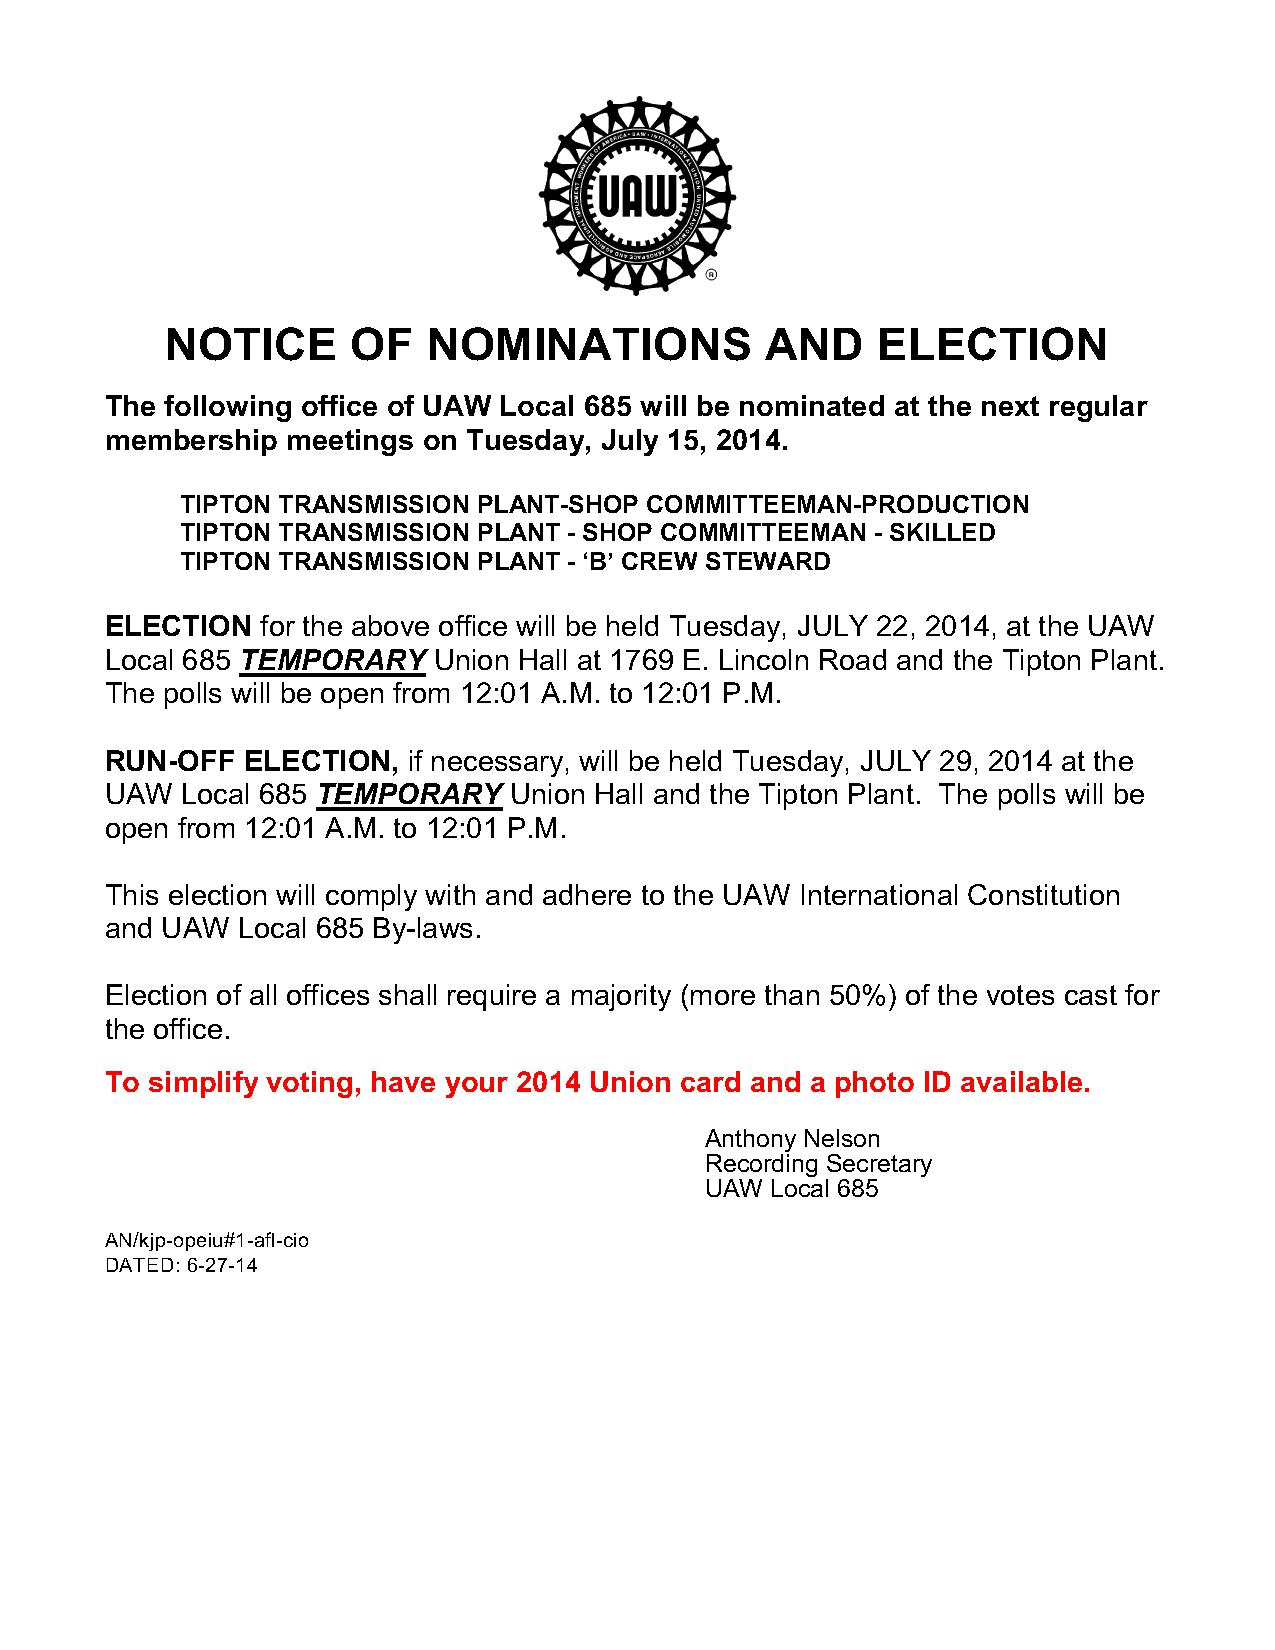 7-15-14 Tipton Transmission Plant Nominations and Election Notice_1 (1)